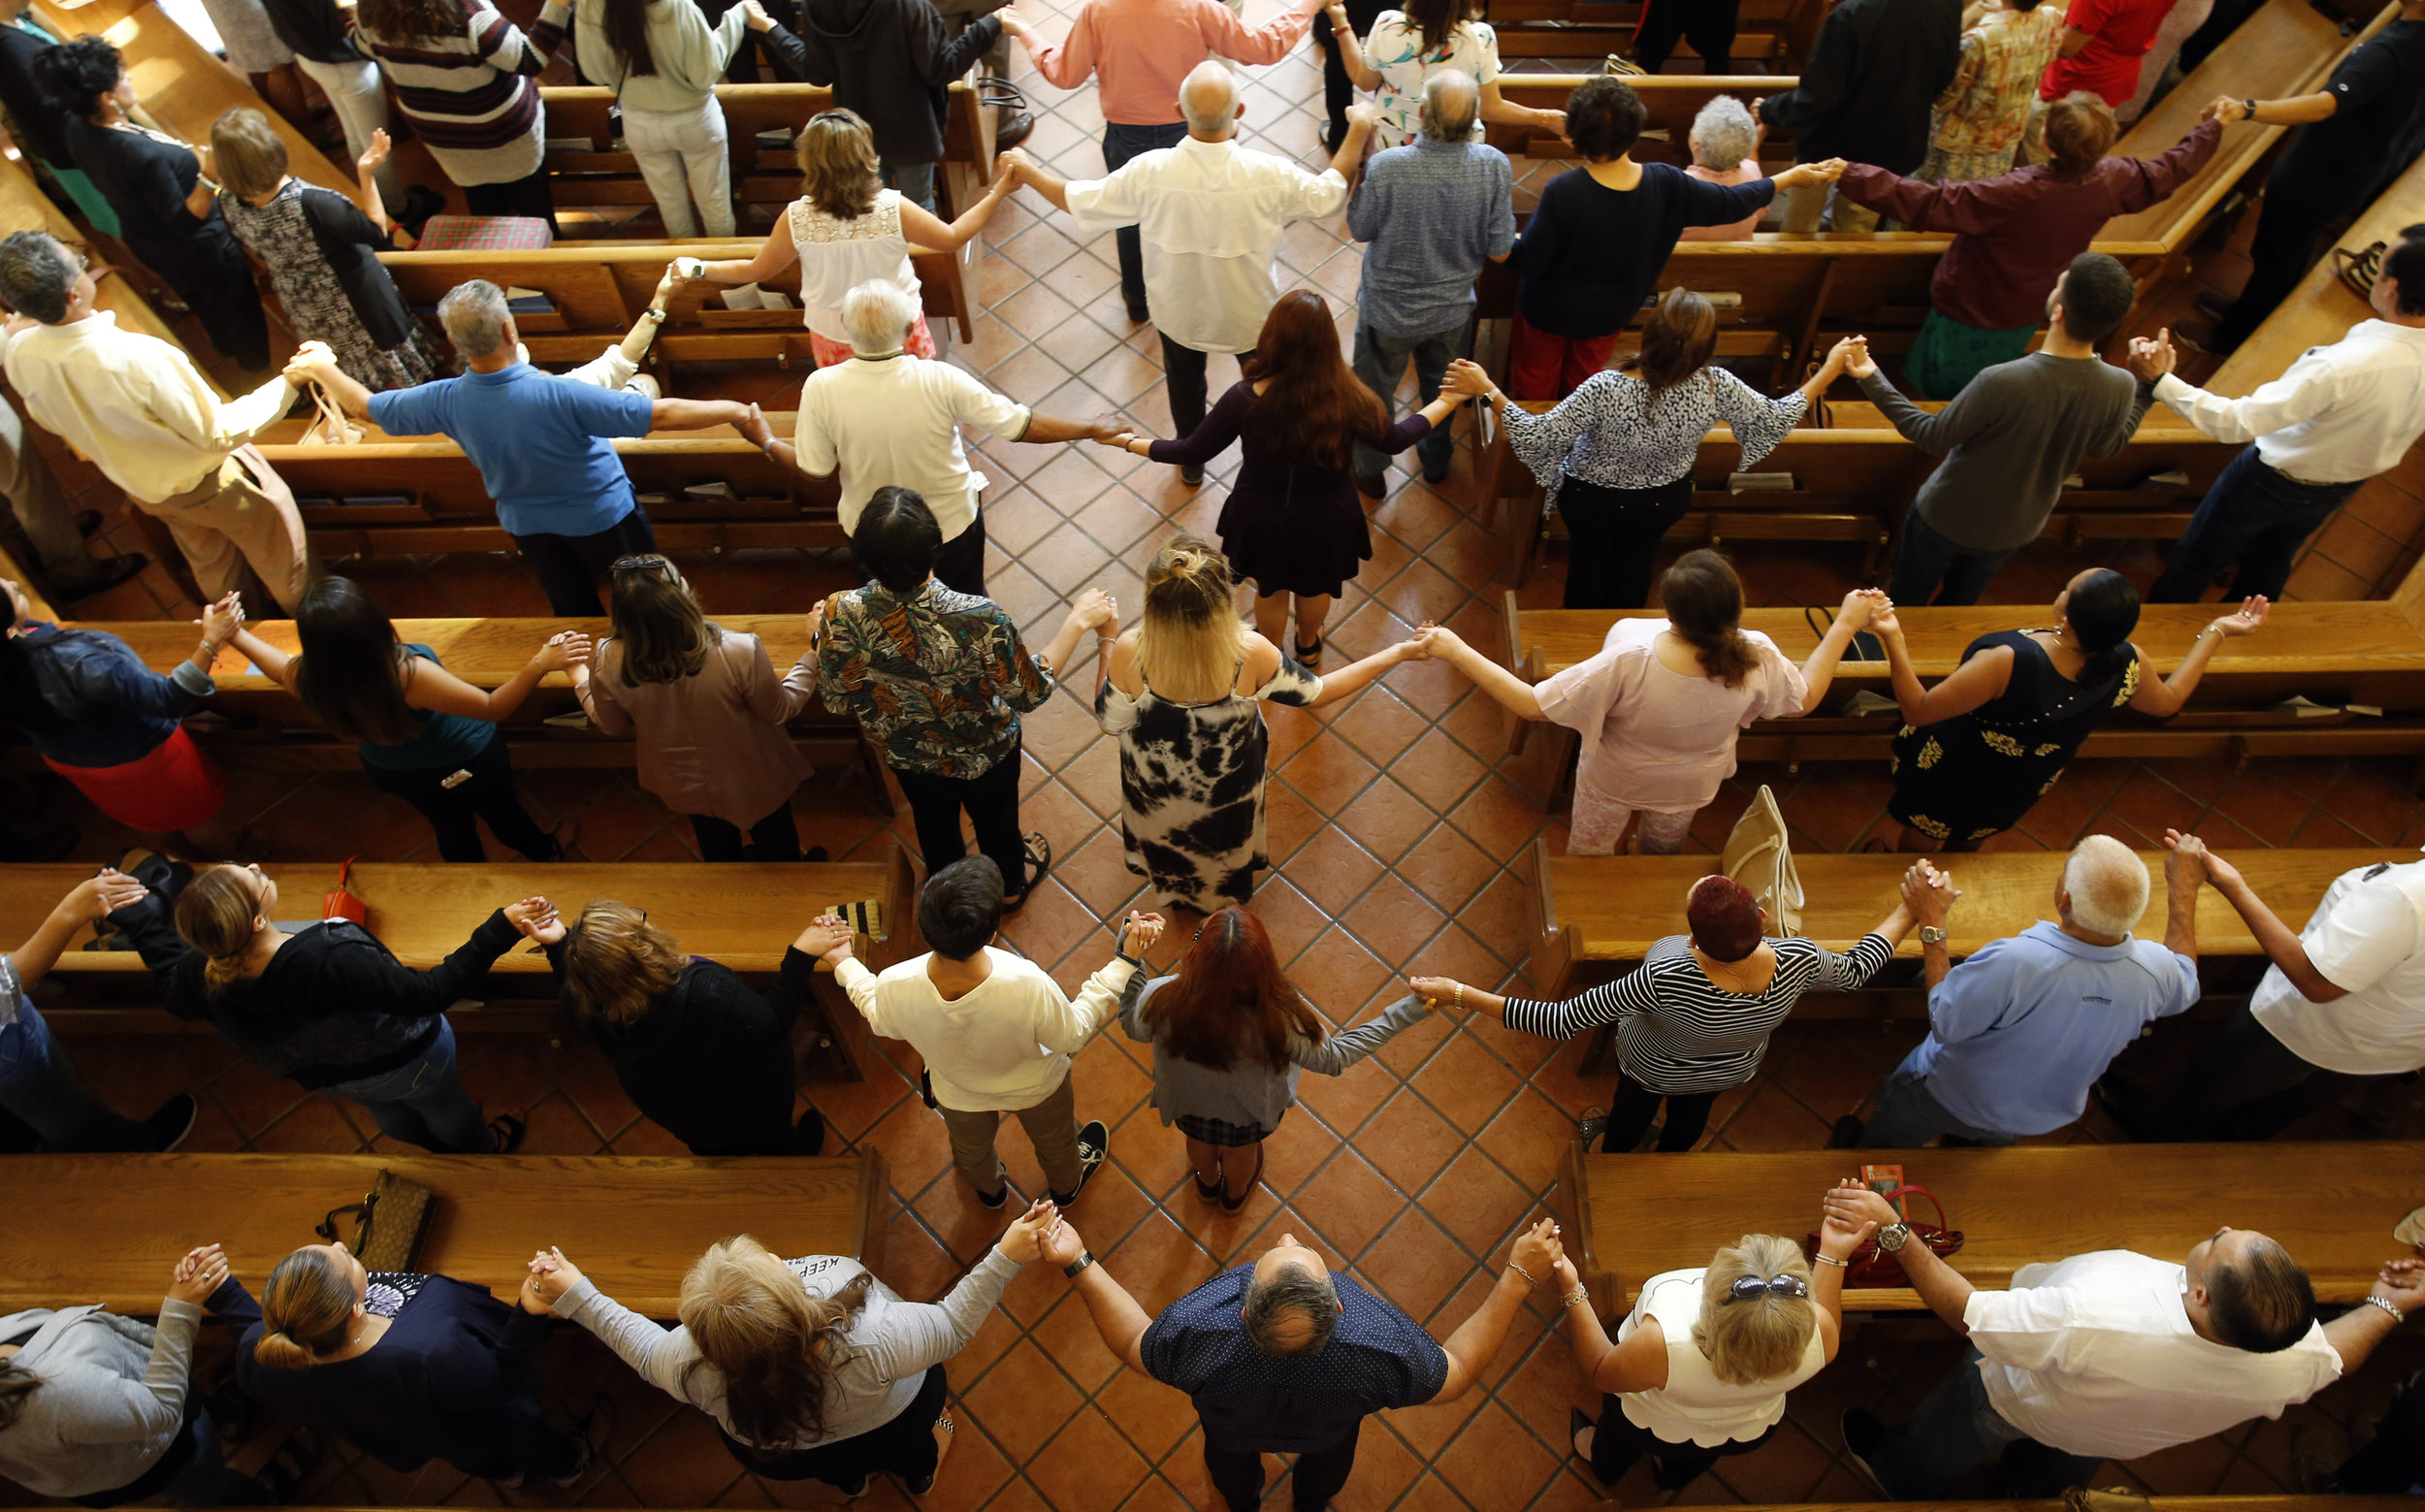 Churchgoers hold hands as they sing during a morning service at St. Pius X Church in El Paso, Texas on Sunday, a day after a white nationalist shot and killed more than 20 people. Vernon Bryant/The Dallas Morning News via AP.